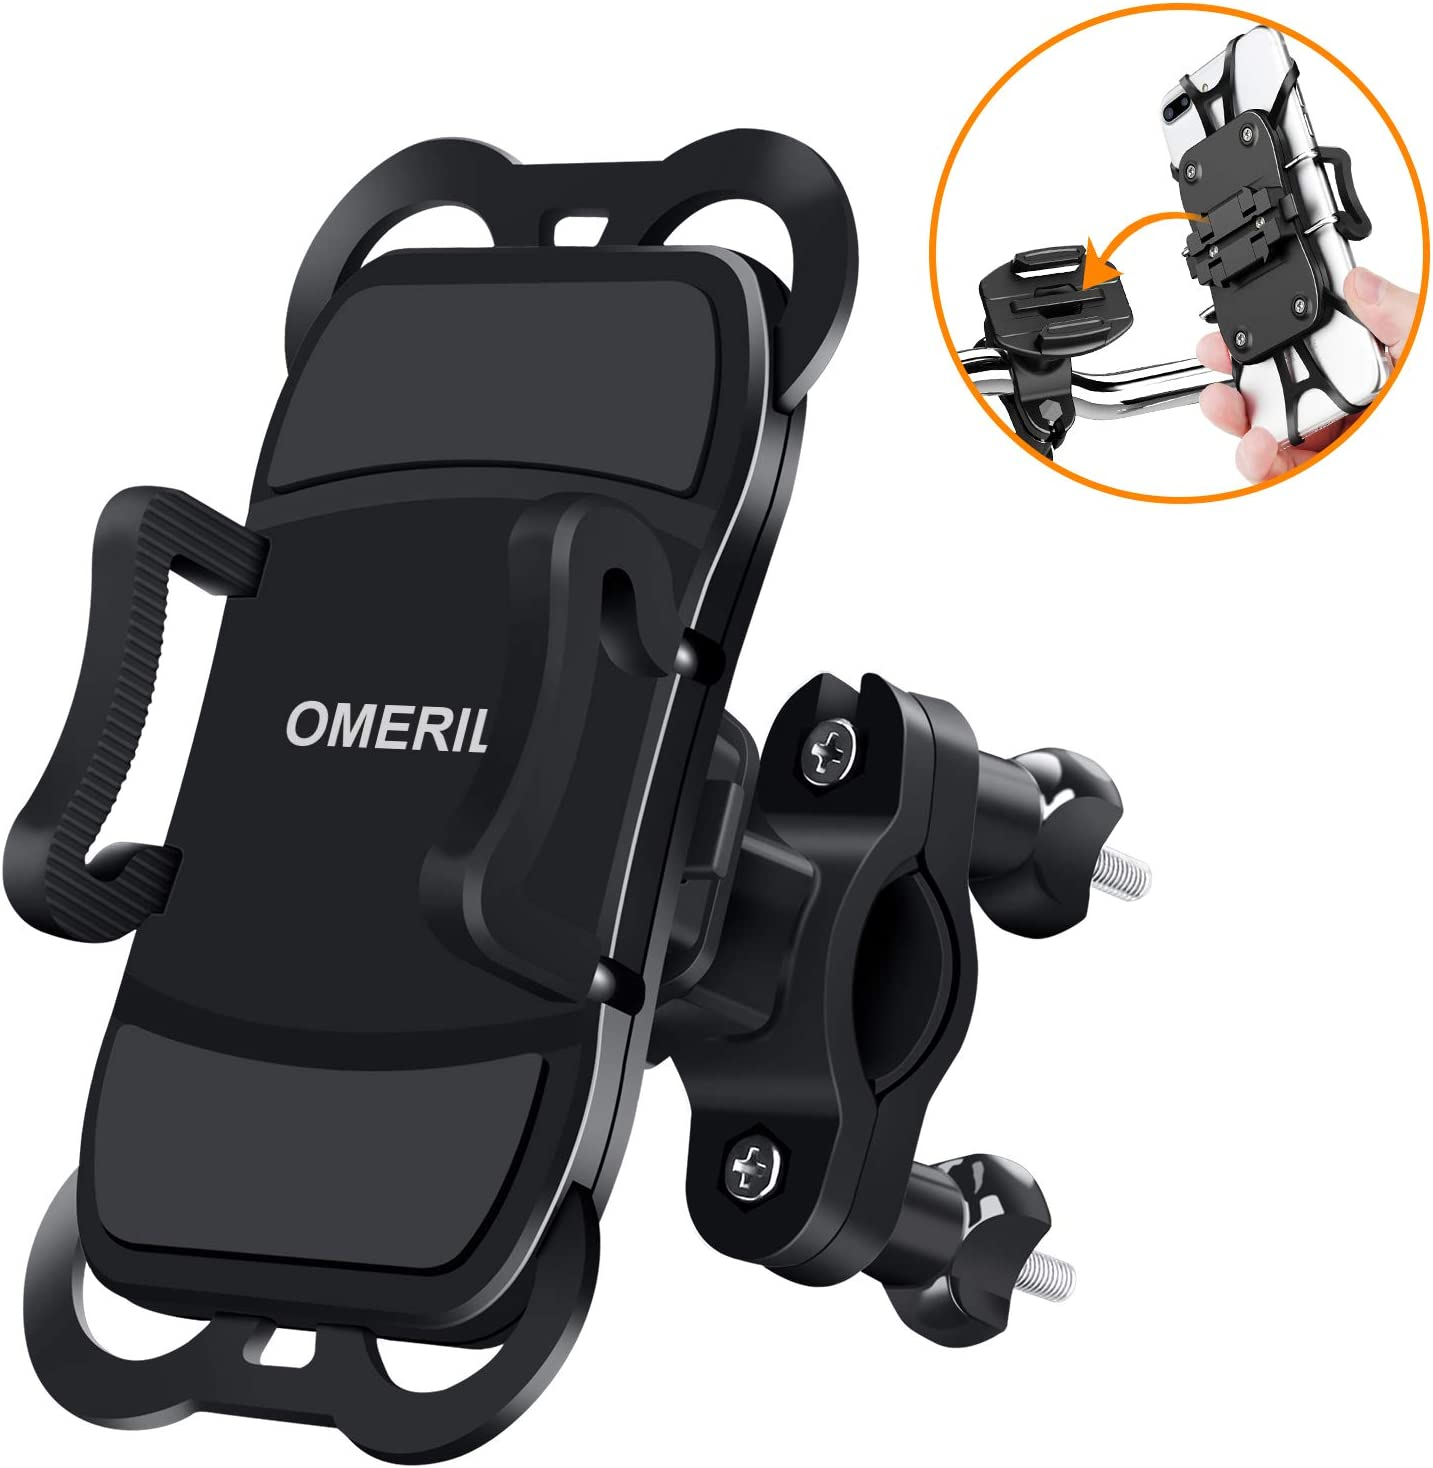 OMERIL Soporte Movil Bicicleta y Moto, Anti Vibración Soporte Movil Bici Desmontable, 360° Rotación Soporte para iPhone X/Xr/Xs/8/7/6, Samsung S9/S8, Huawei P30/P20, GPS y 3.5